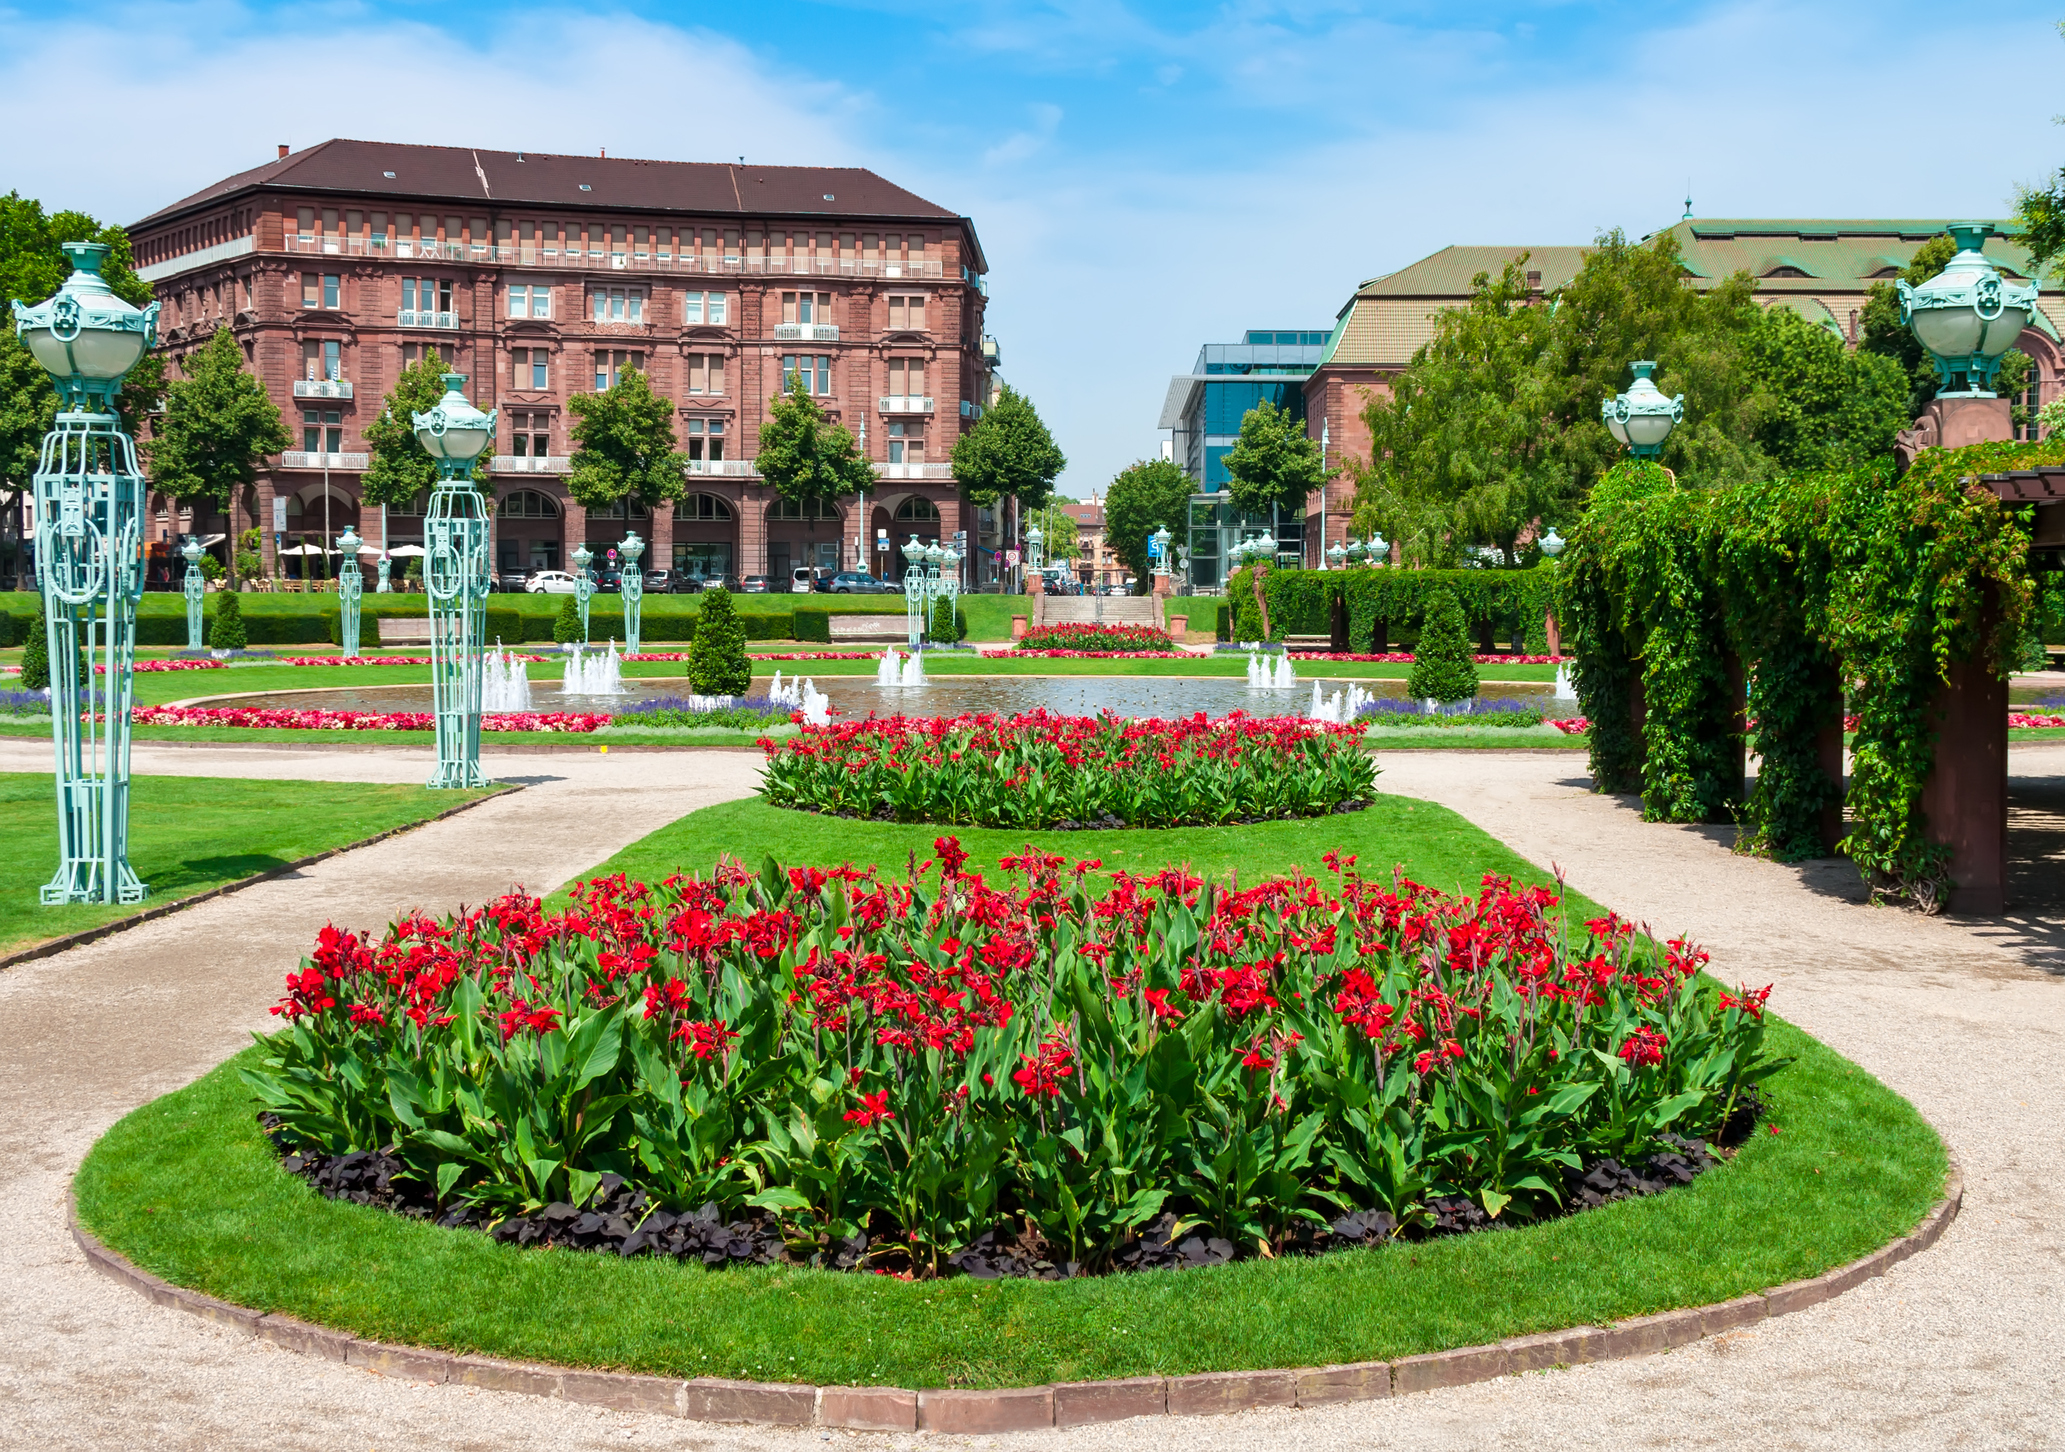 Mannheim during the day